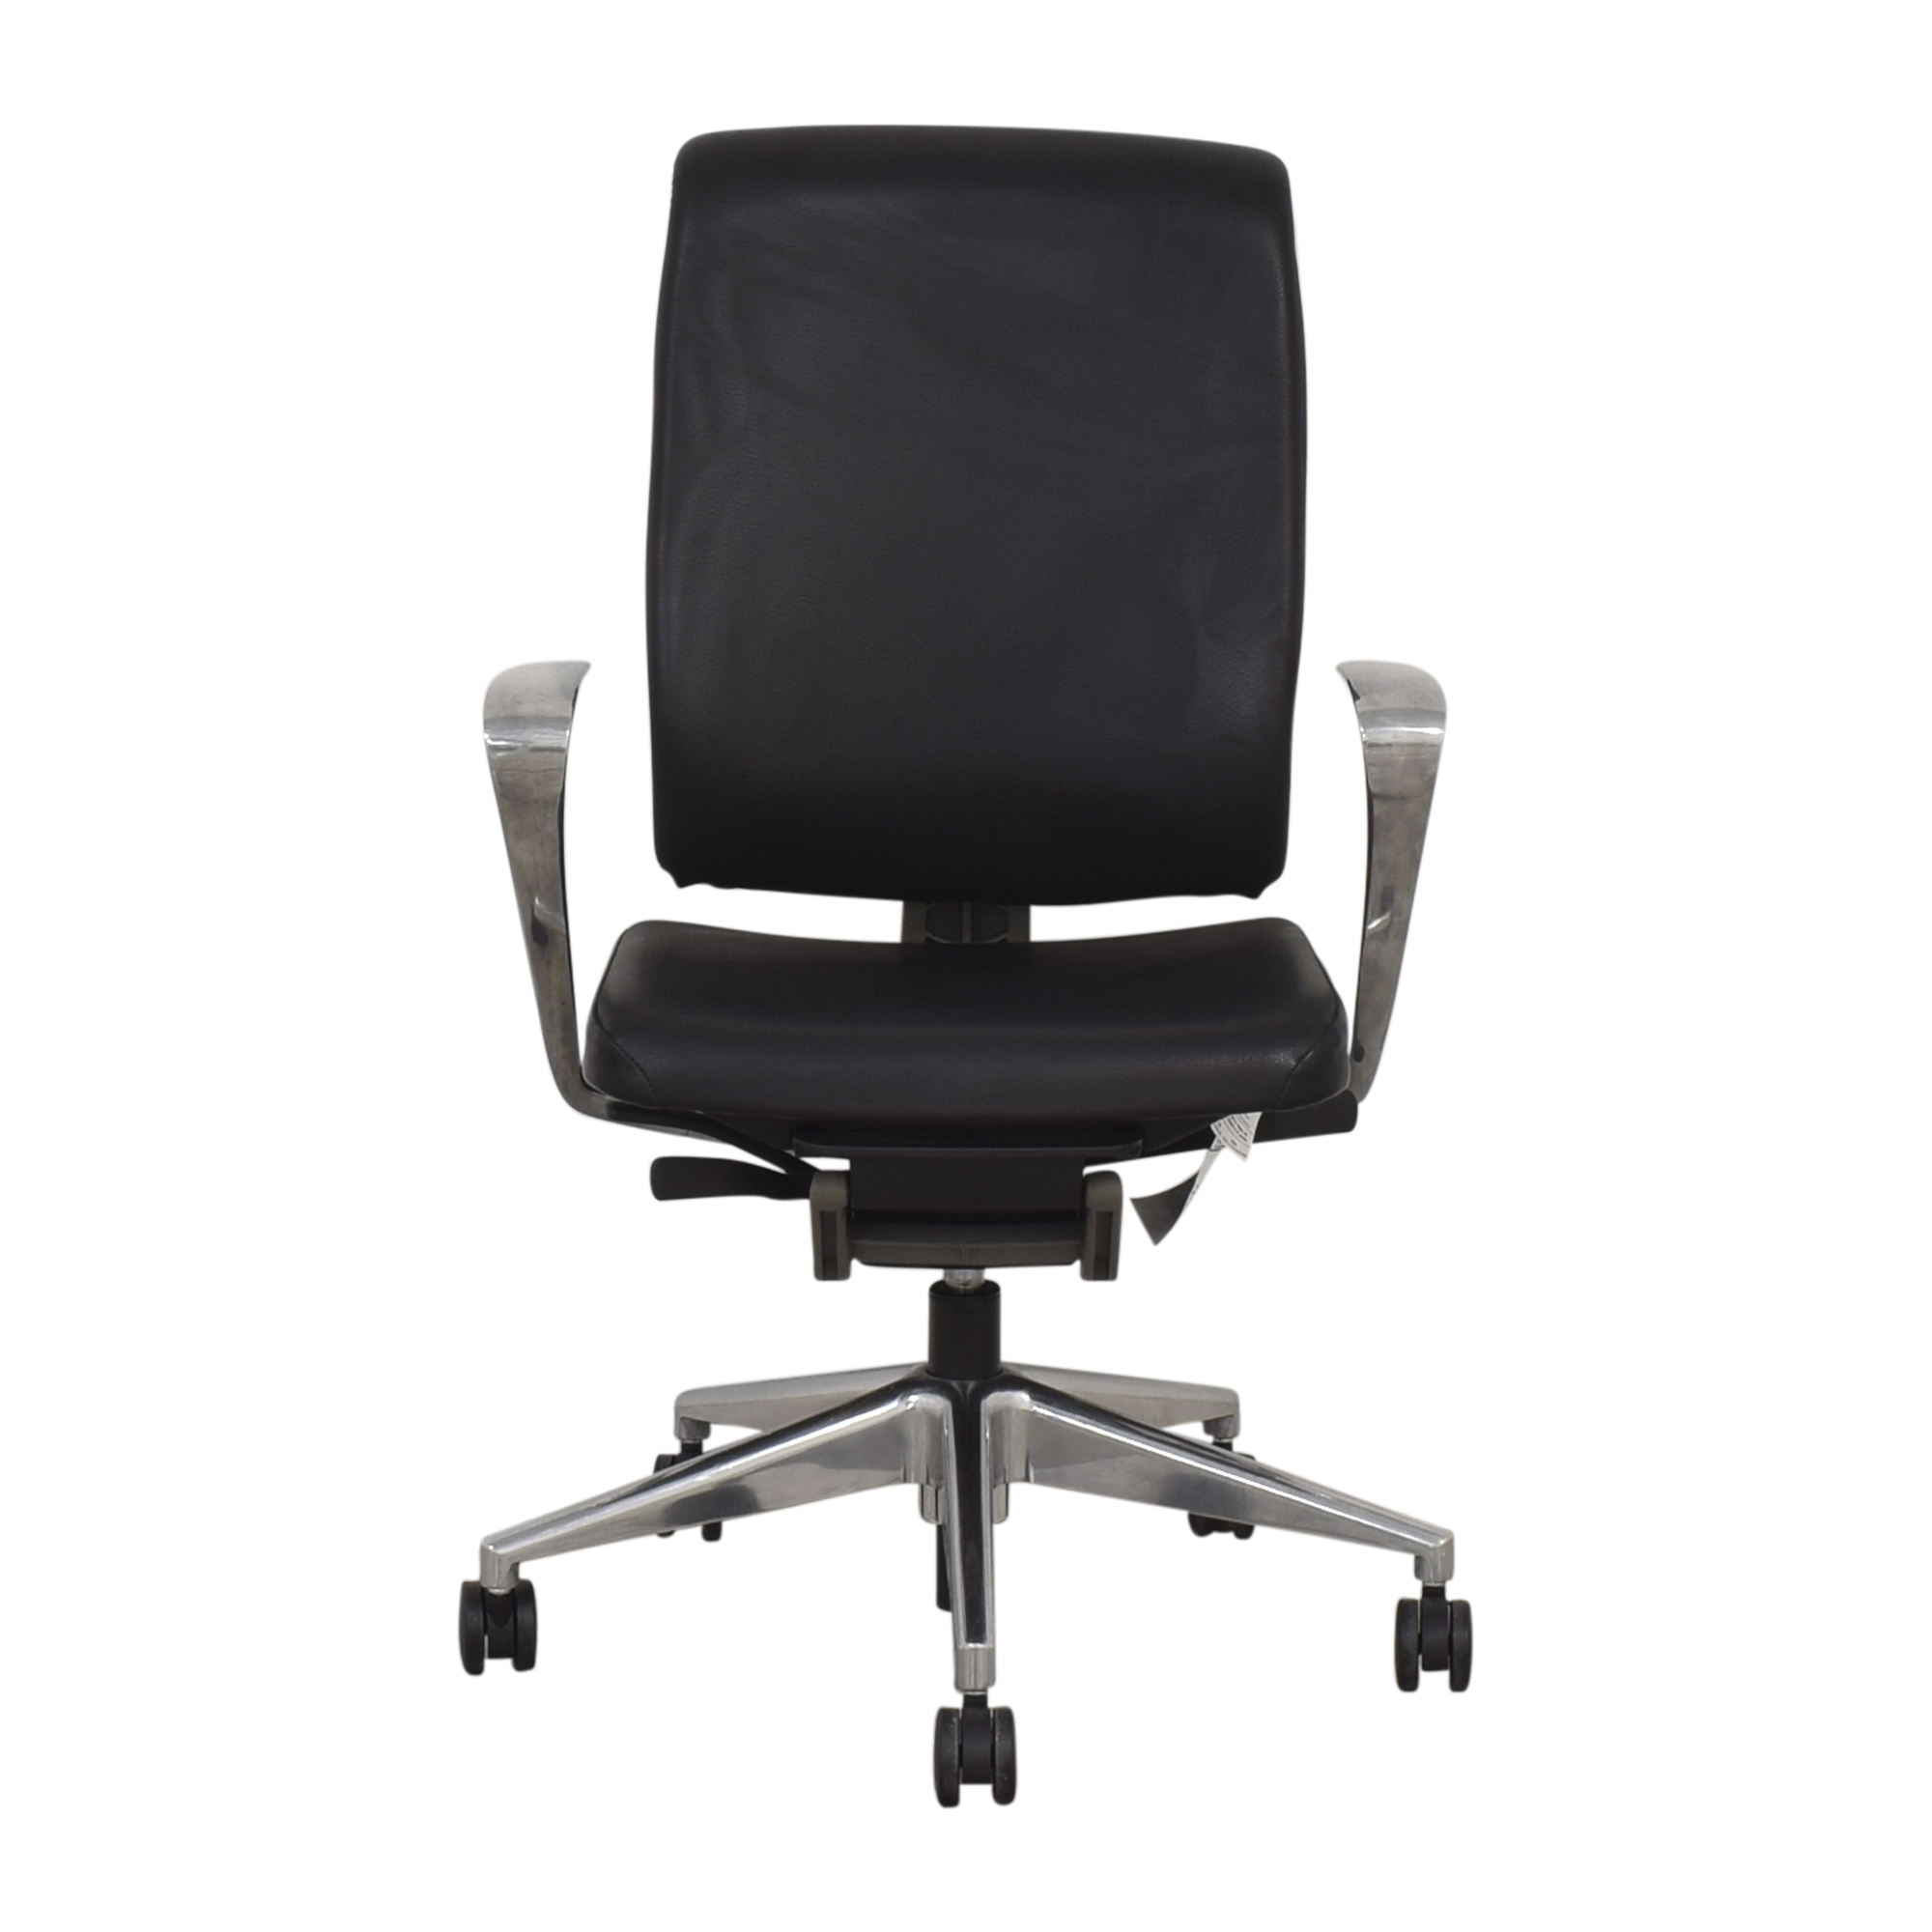 buy Allsteel Task Chair Allsteel Chairs